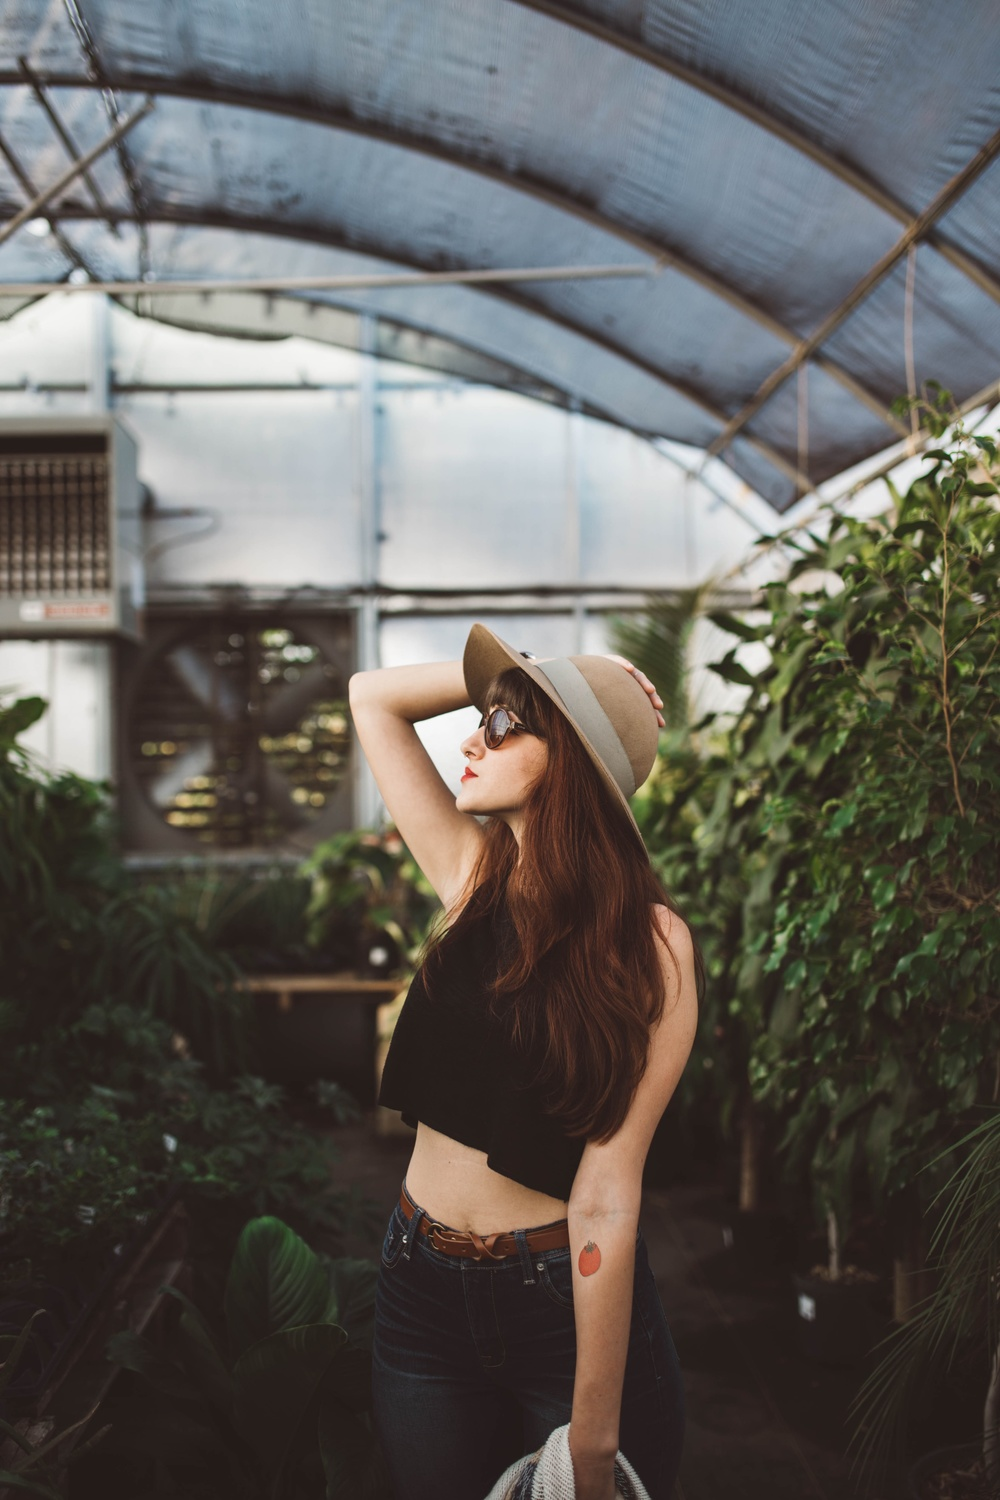 greenhouse girl.jpg